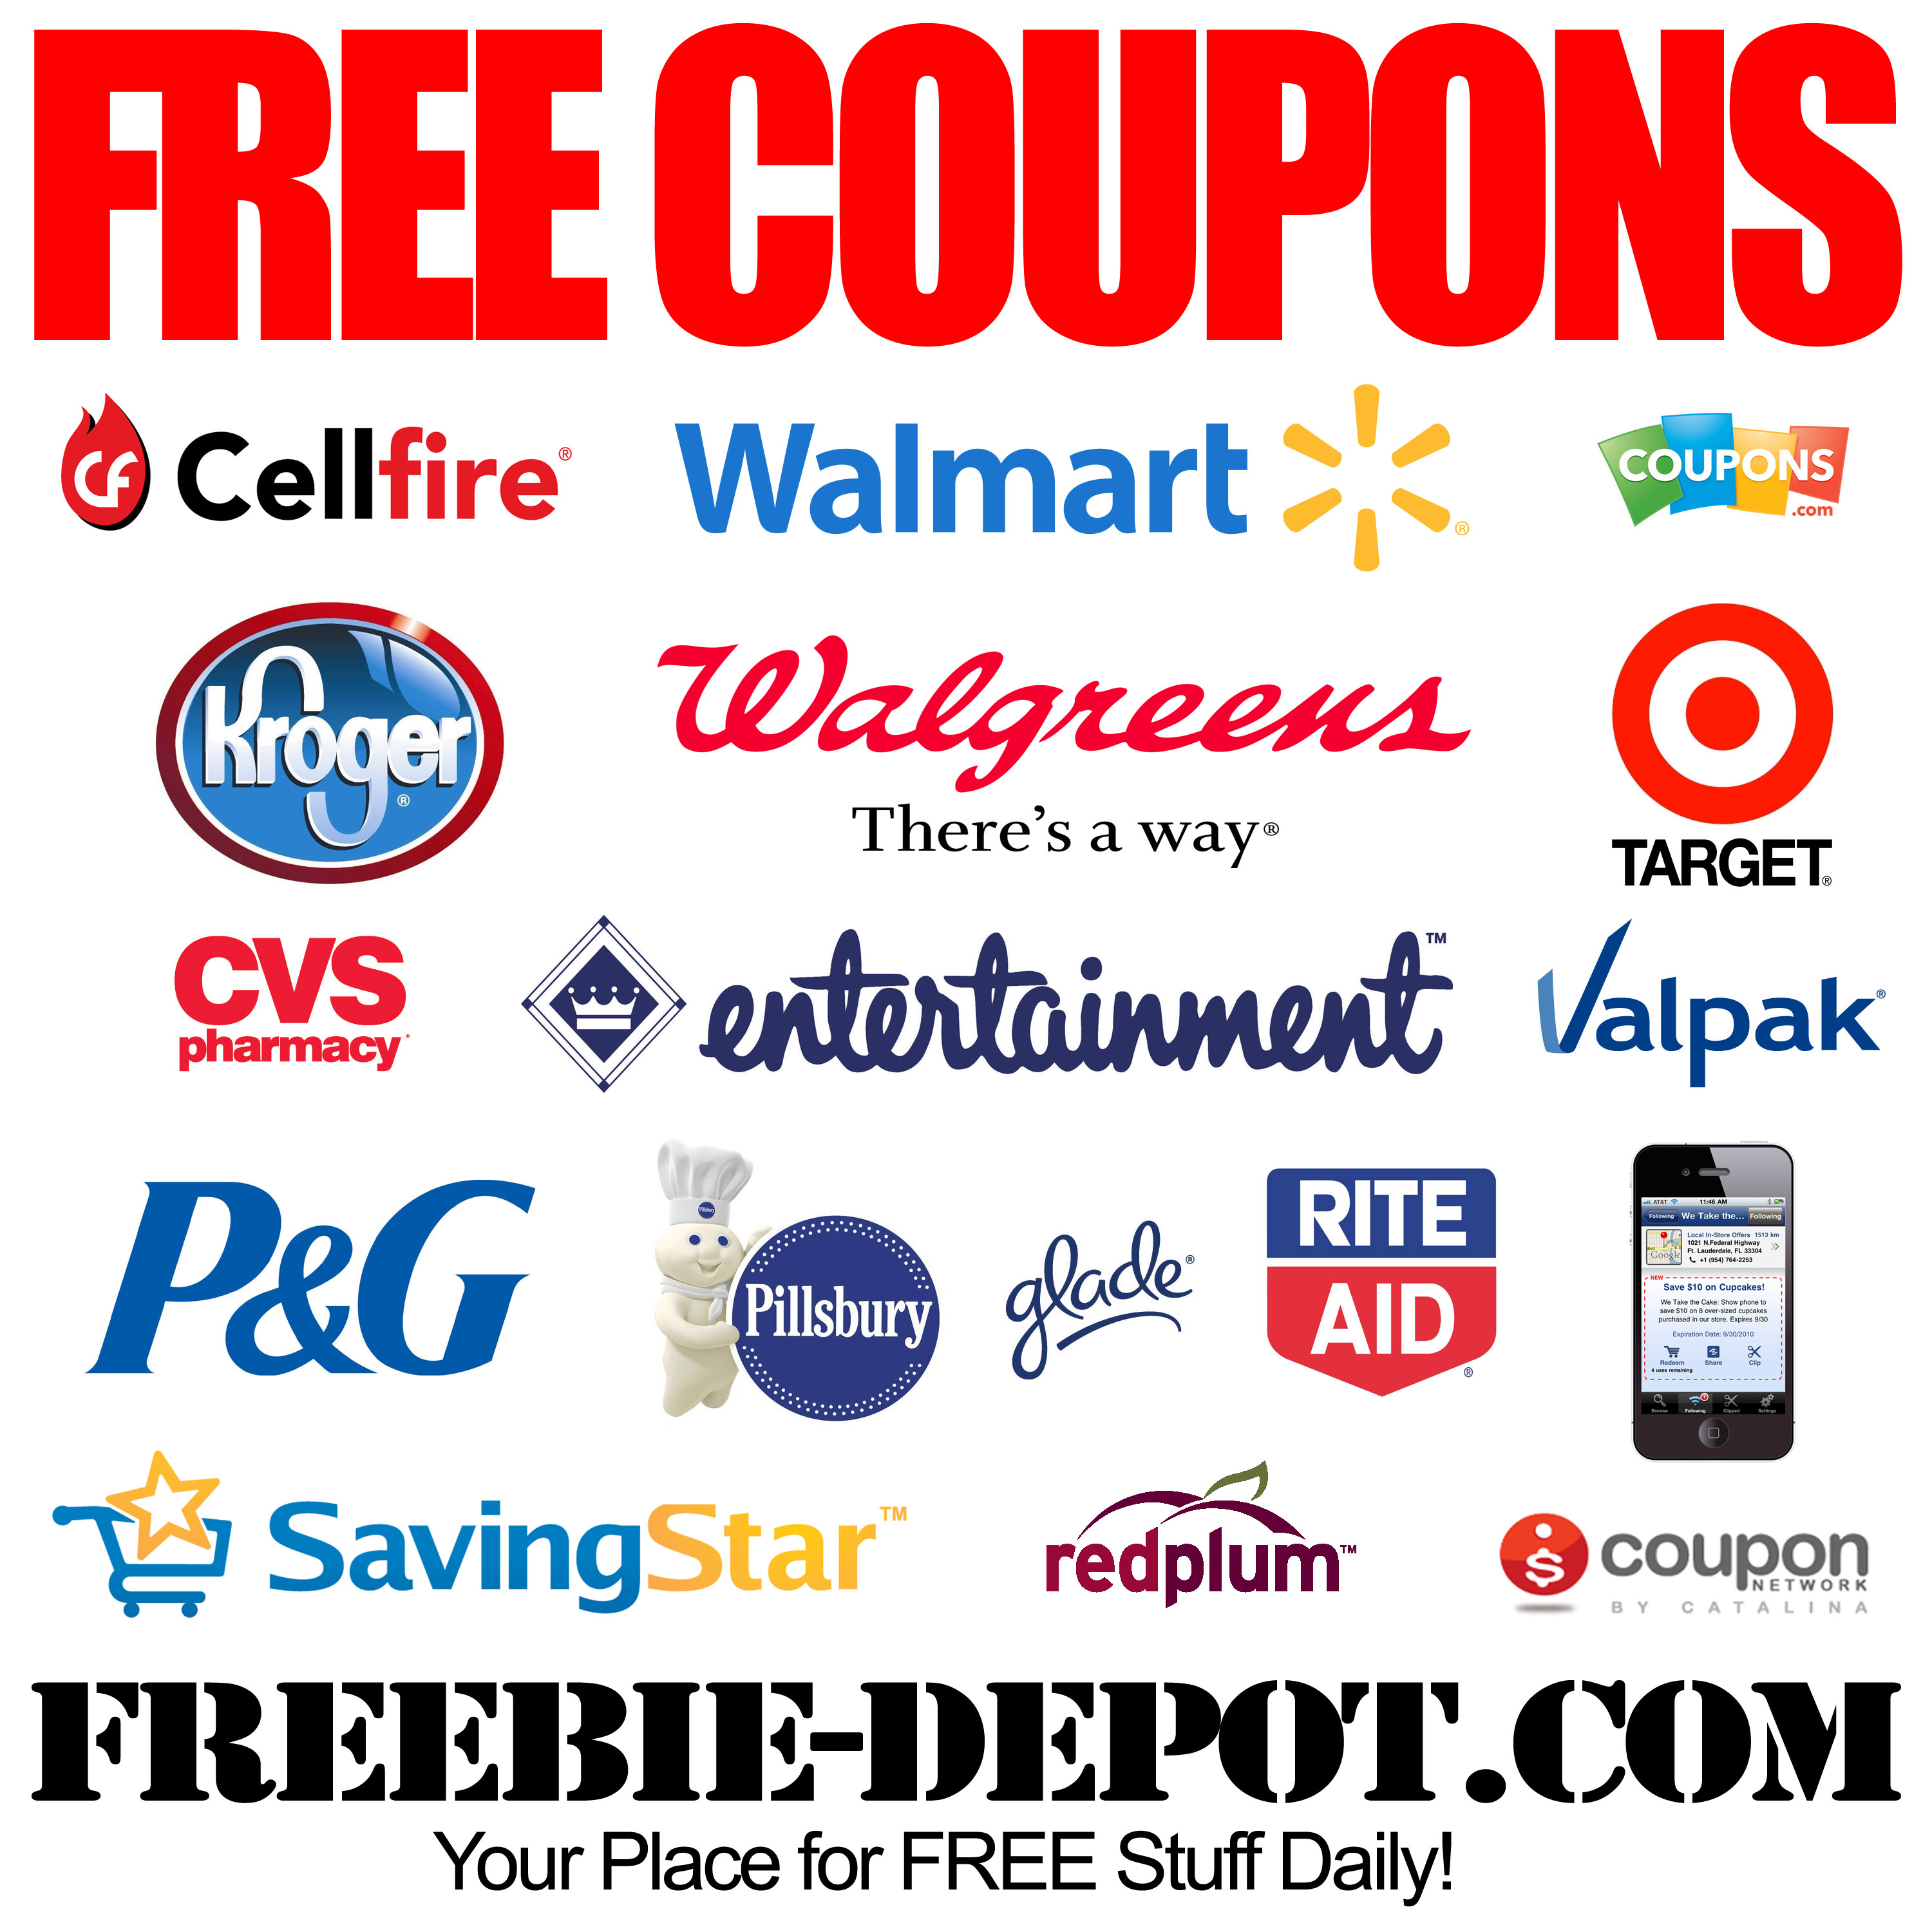 Free Coupon Codes – Best Quality Free Stuff - Free Printable Coupons 2014